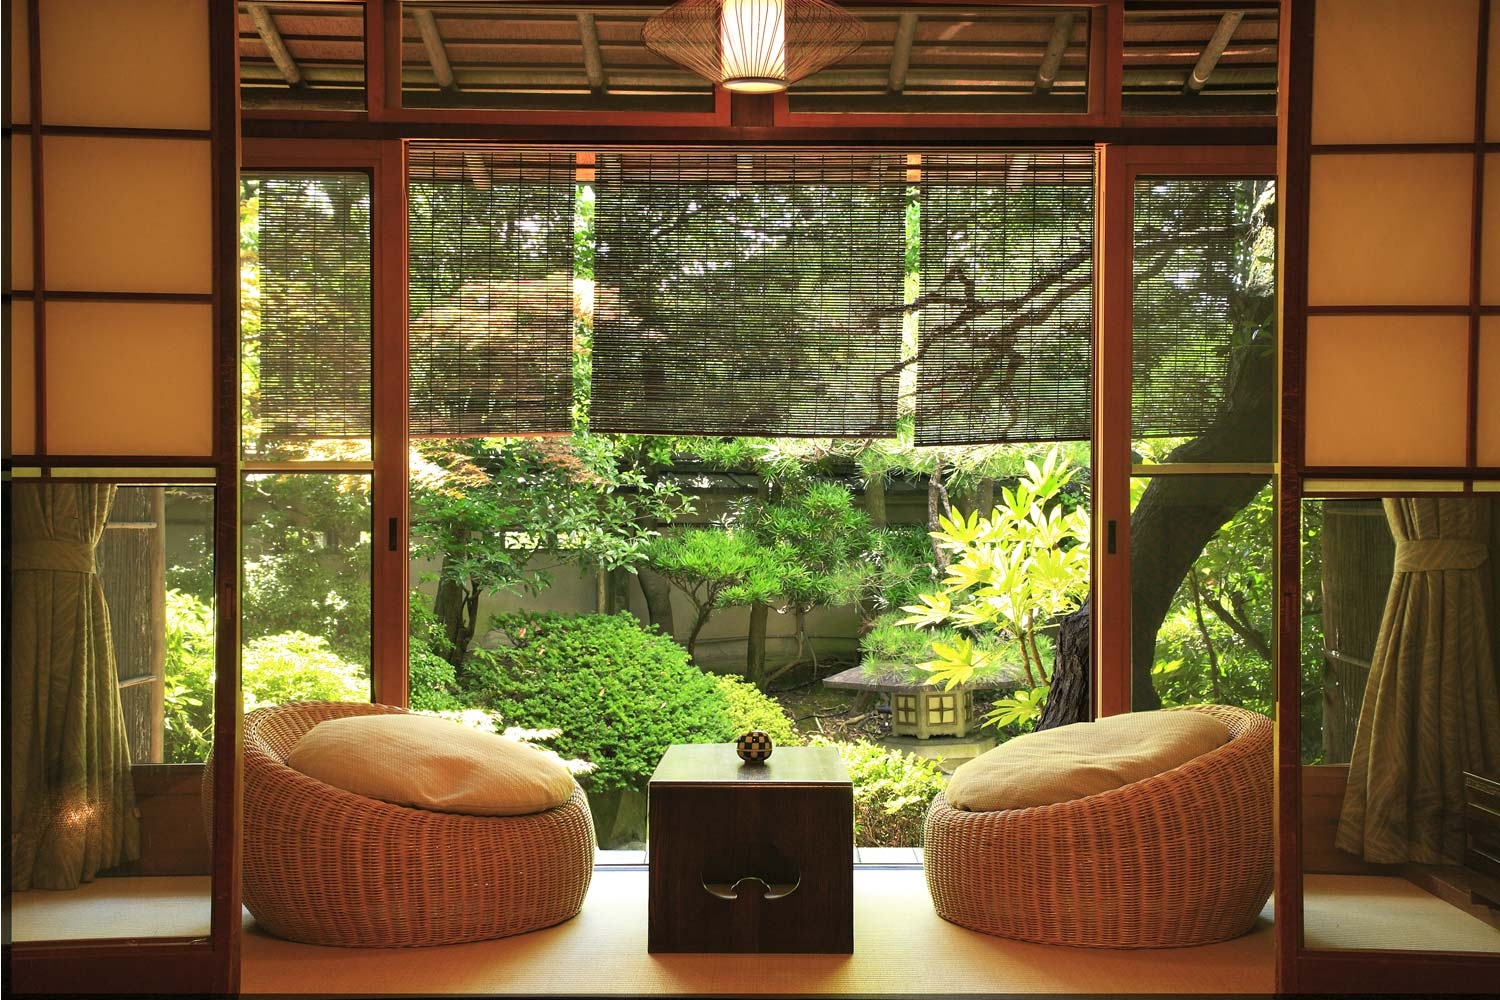 Zen garden roomInterior Design Ideas.